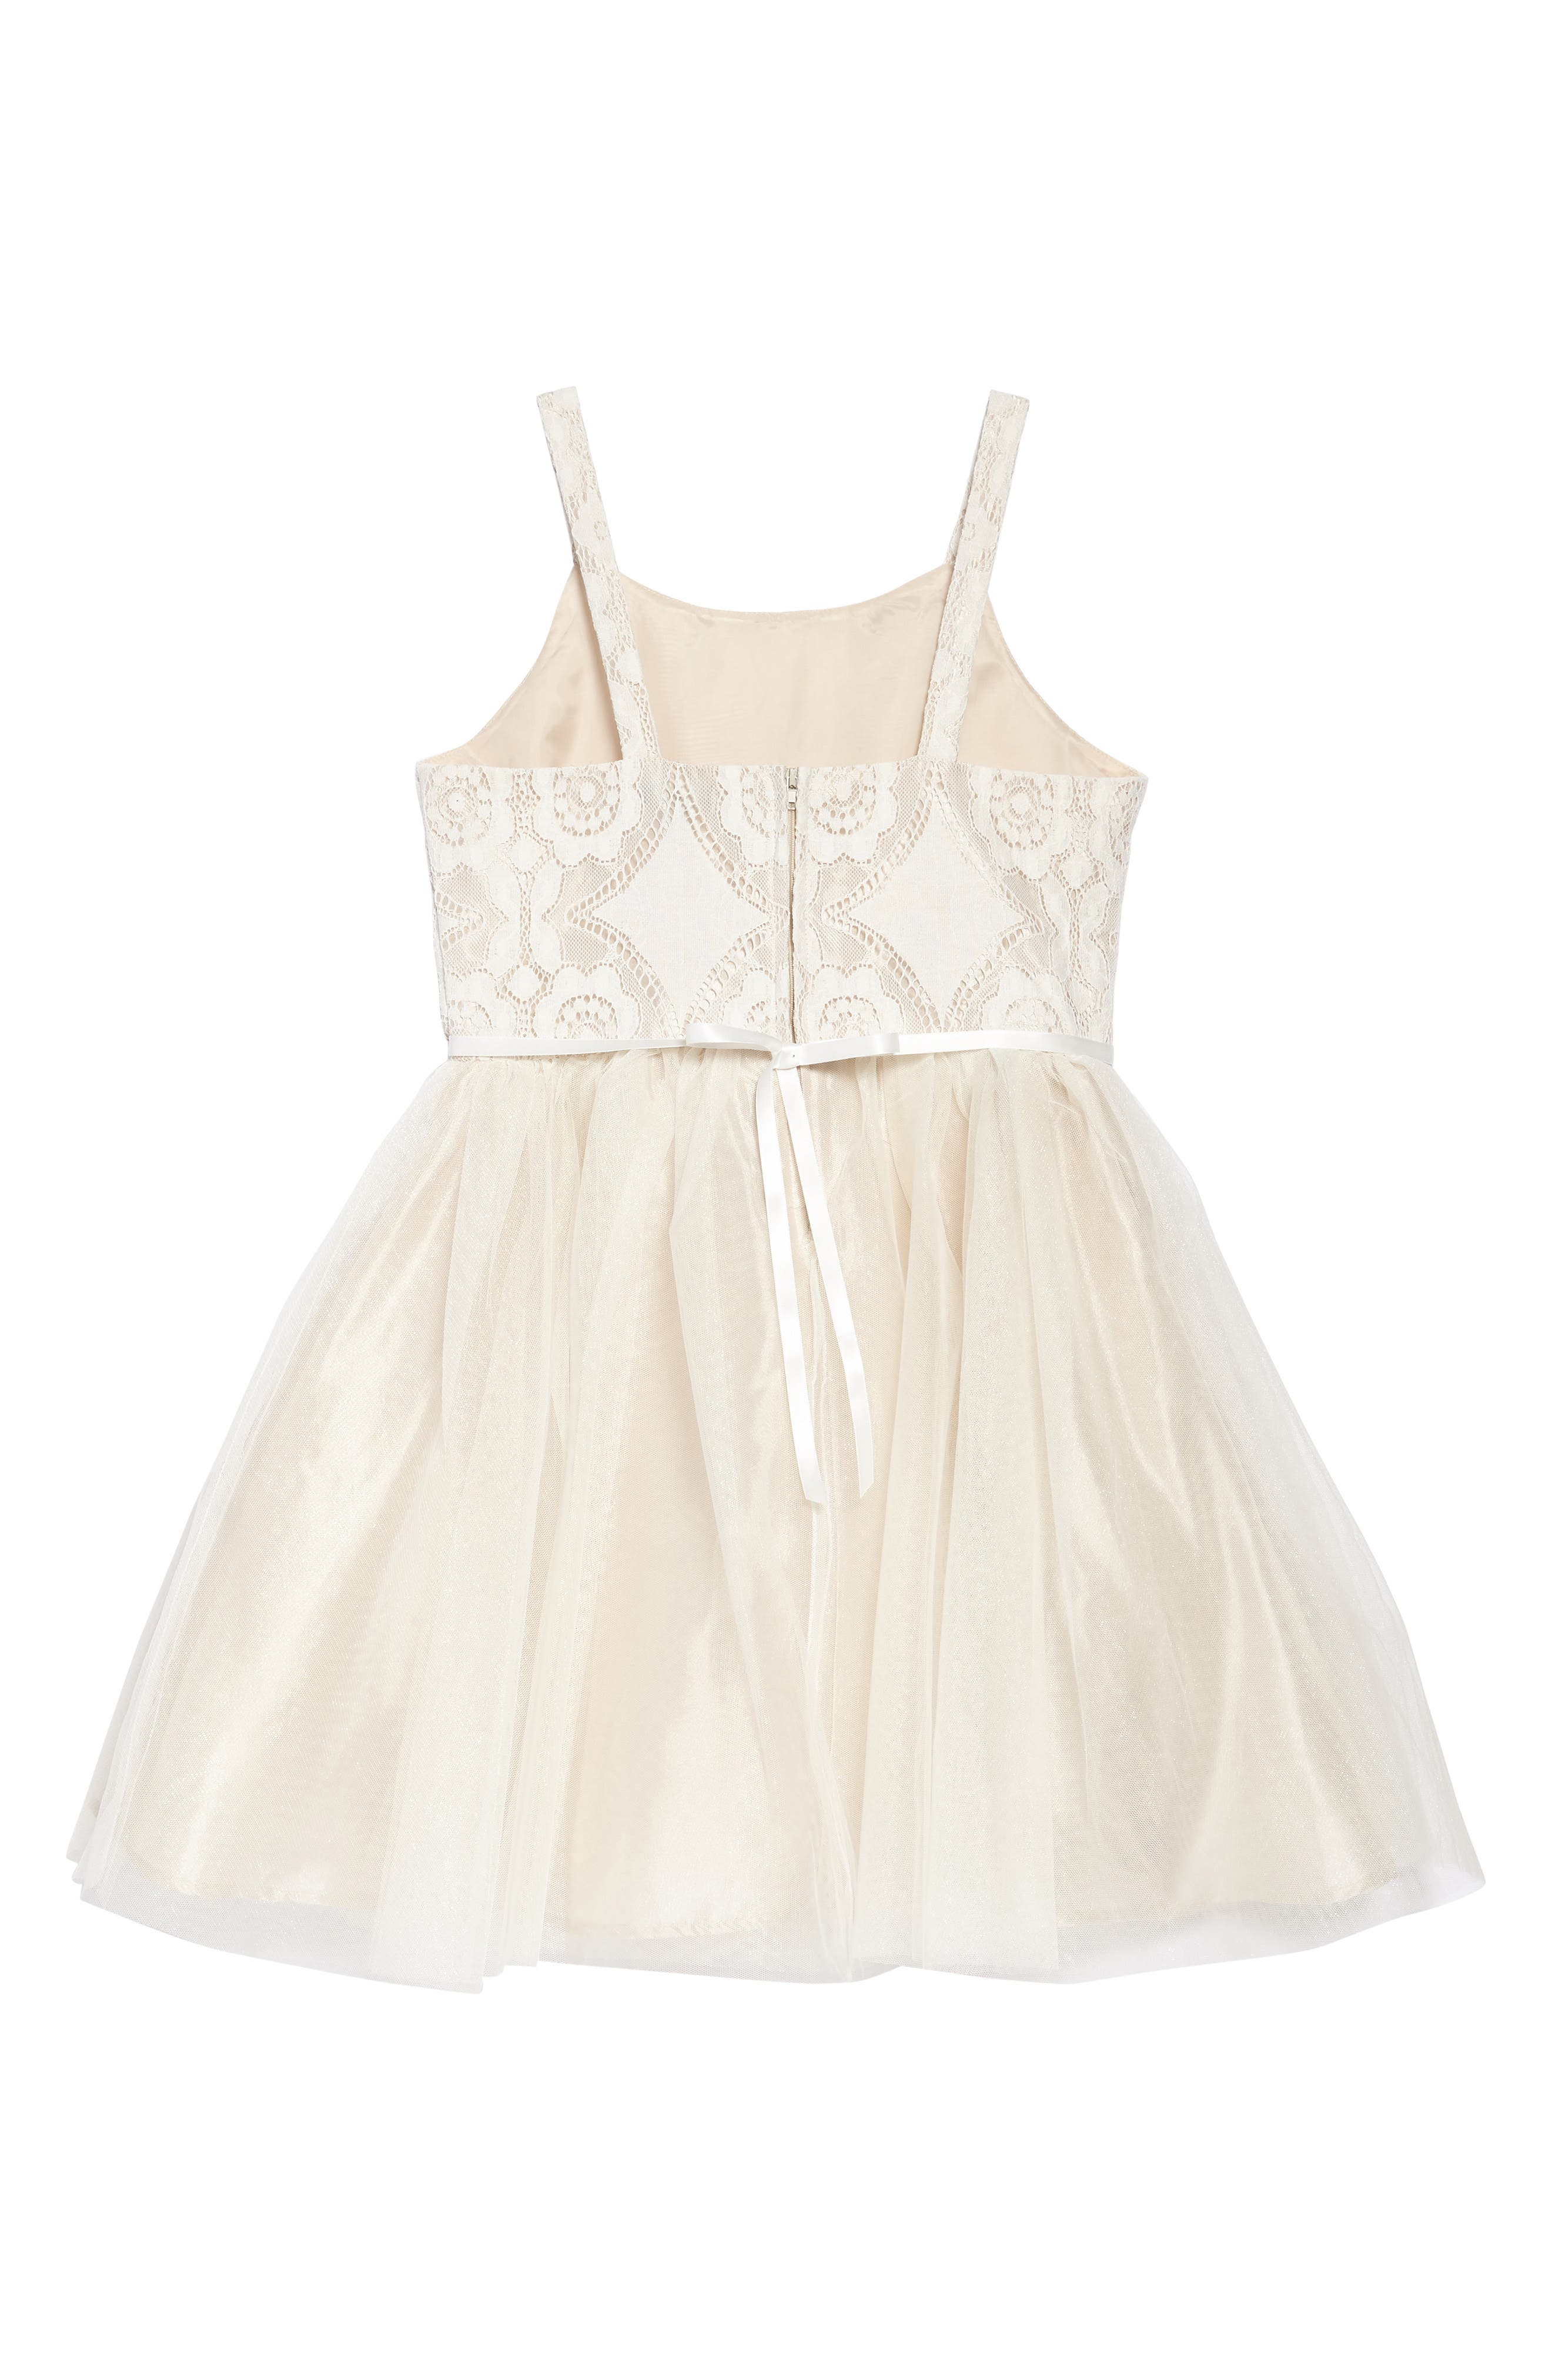 Lace & Tulle Party Dress,                             Alternate thumbnail 2, color,                             Ivory/ Tan